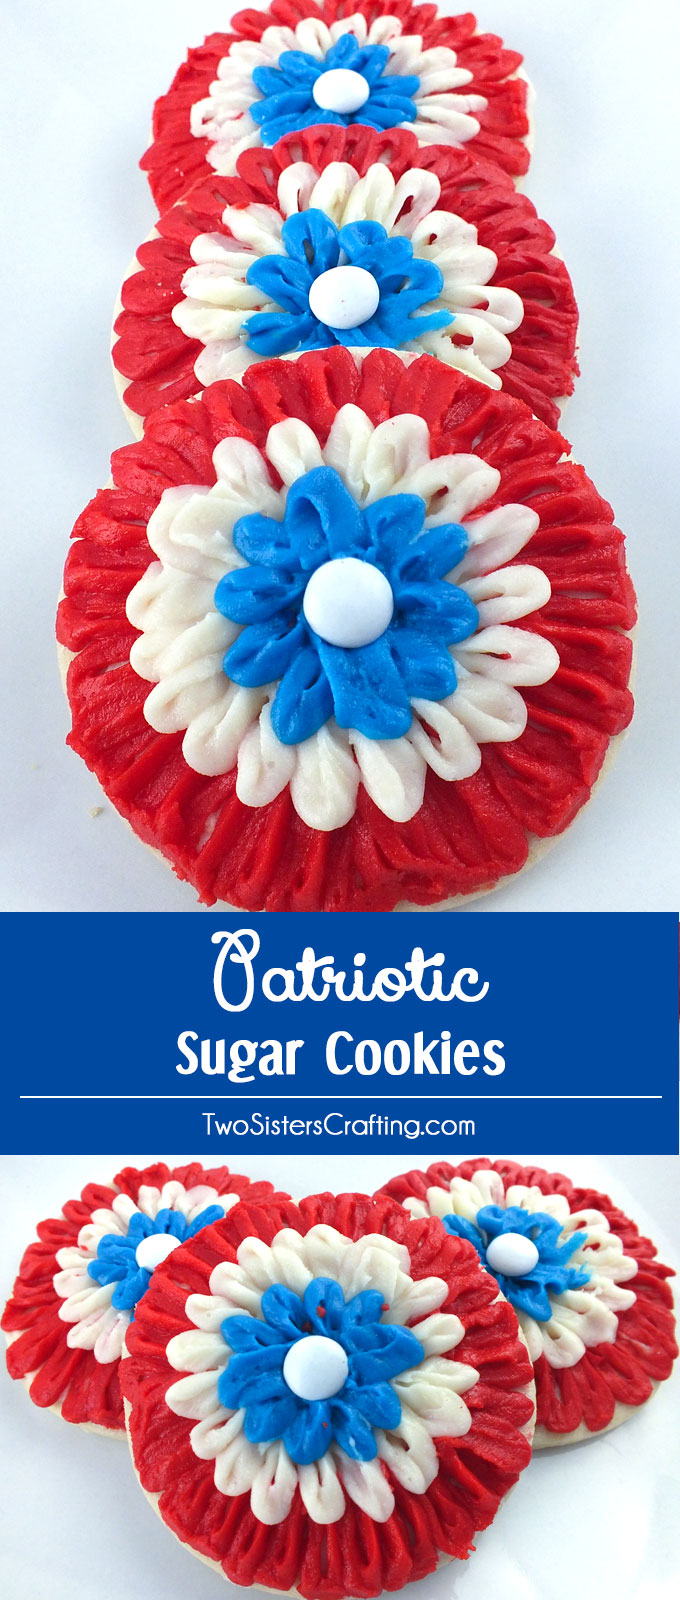 These gorgeous Patriotic Sugar Cookies are made with red white and blue Buttercream Frosting and are the perfect dessert for a 4th of July Party or a Memorial Day BBQ. Easier to make than they look, we have detailed instructions on how to create these beautiful and festive cookies. Follow us for more great 4th of July Food Ideas.